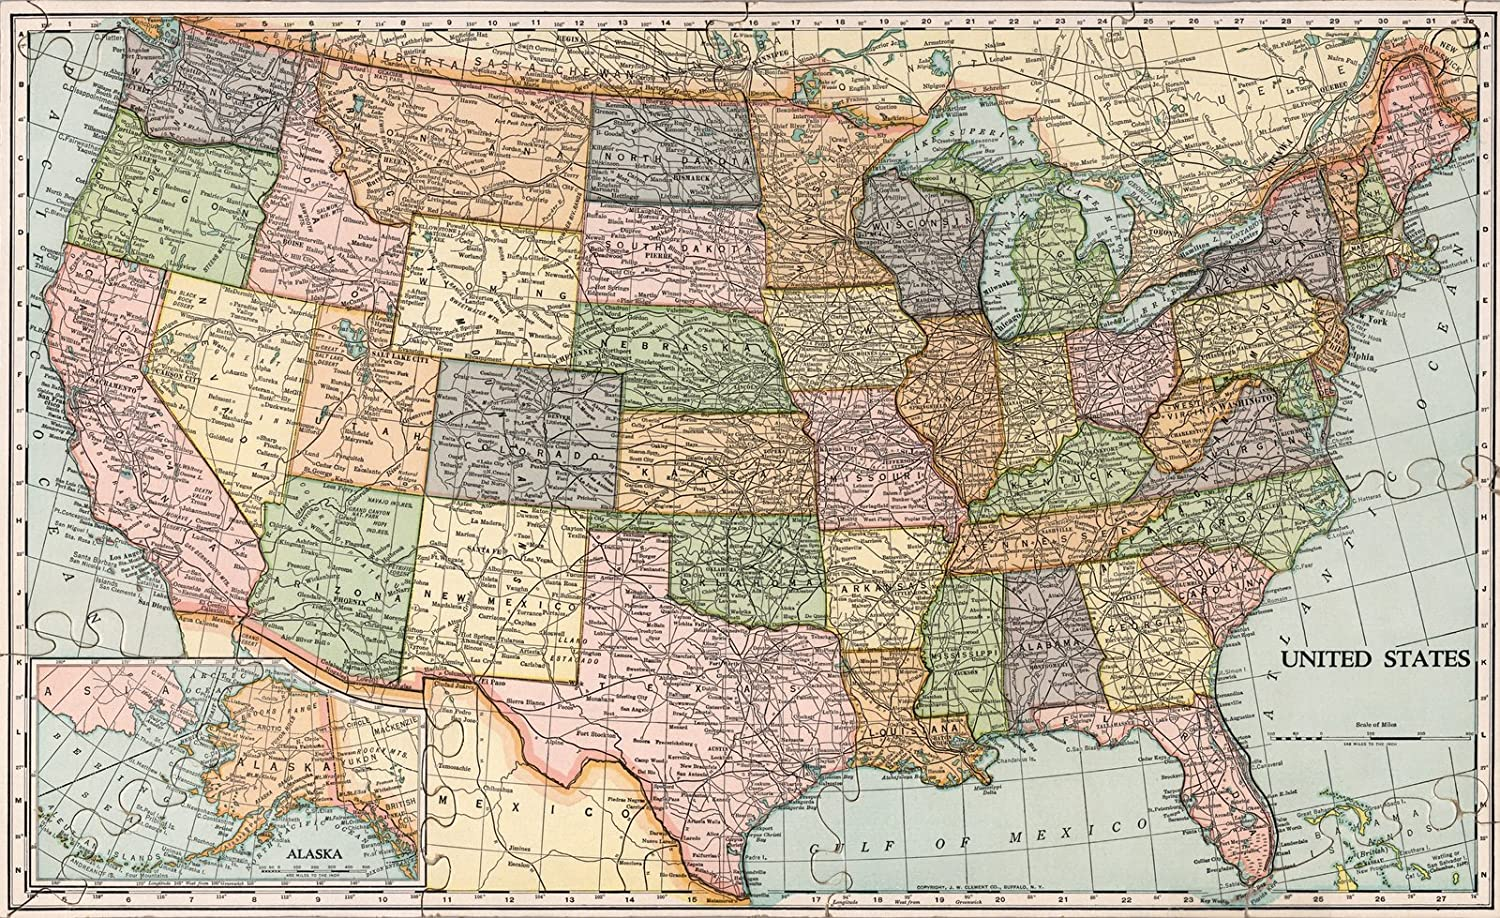 Amazon.com: Historic Map | United States map. Die-Cut on State Lines ...